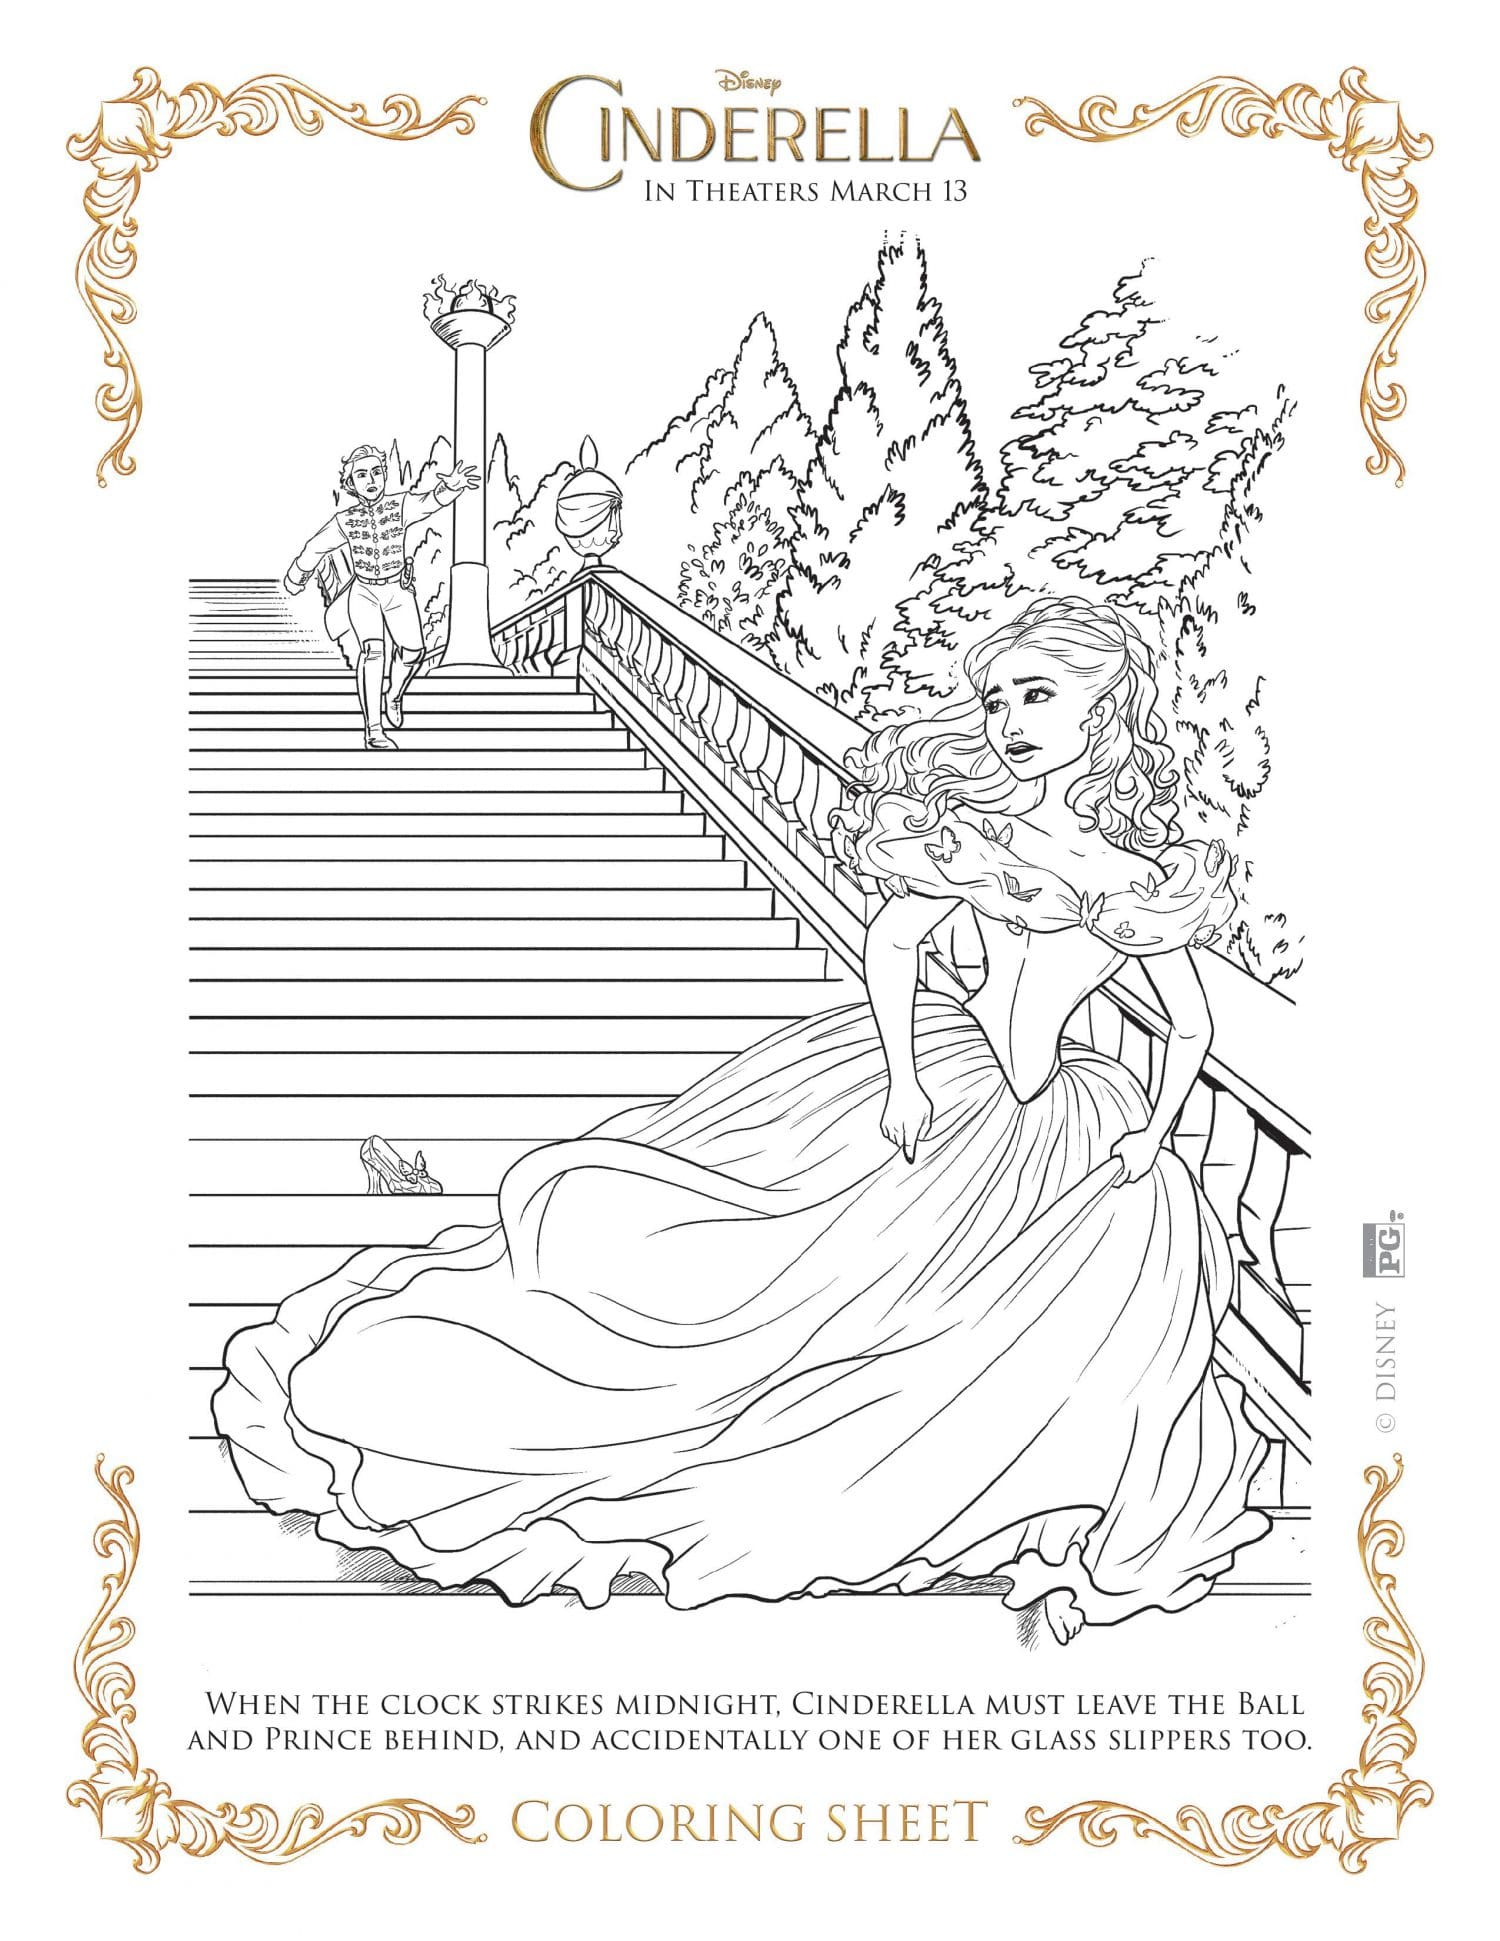 Cinderella coloring page - clock strikes midnight